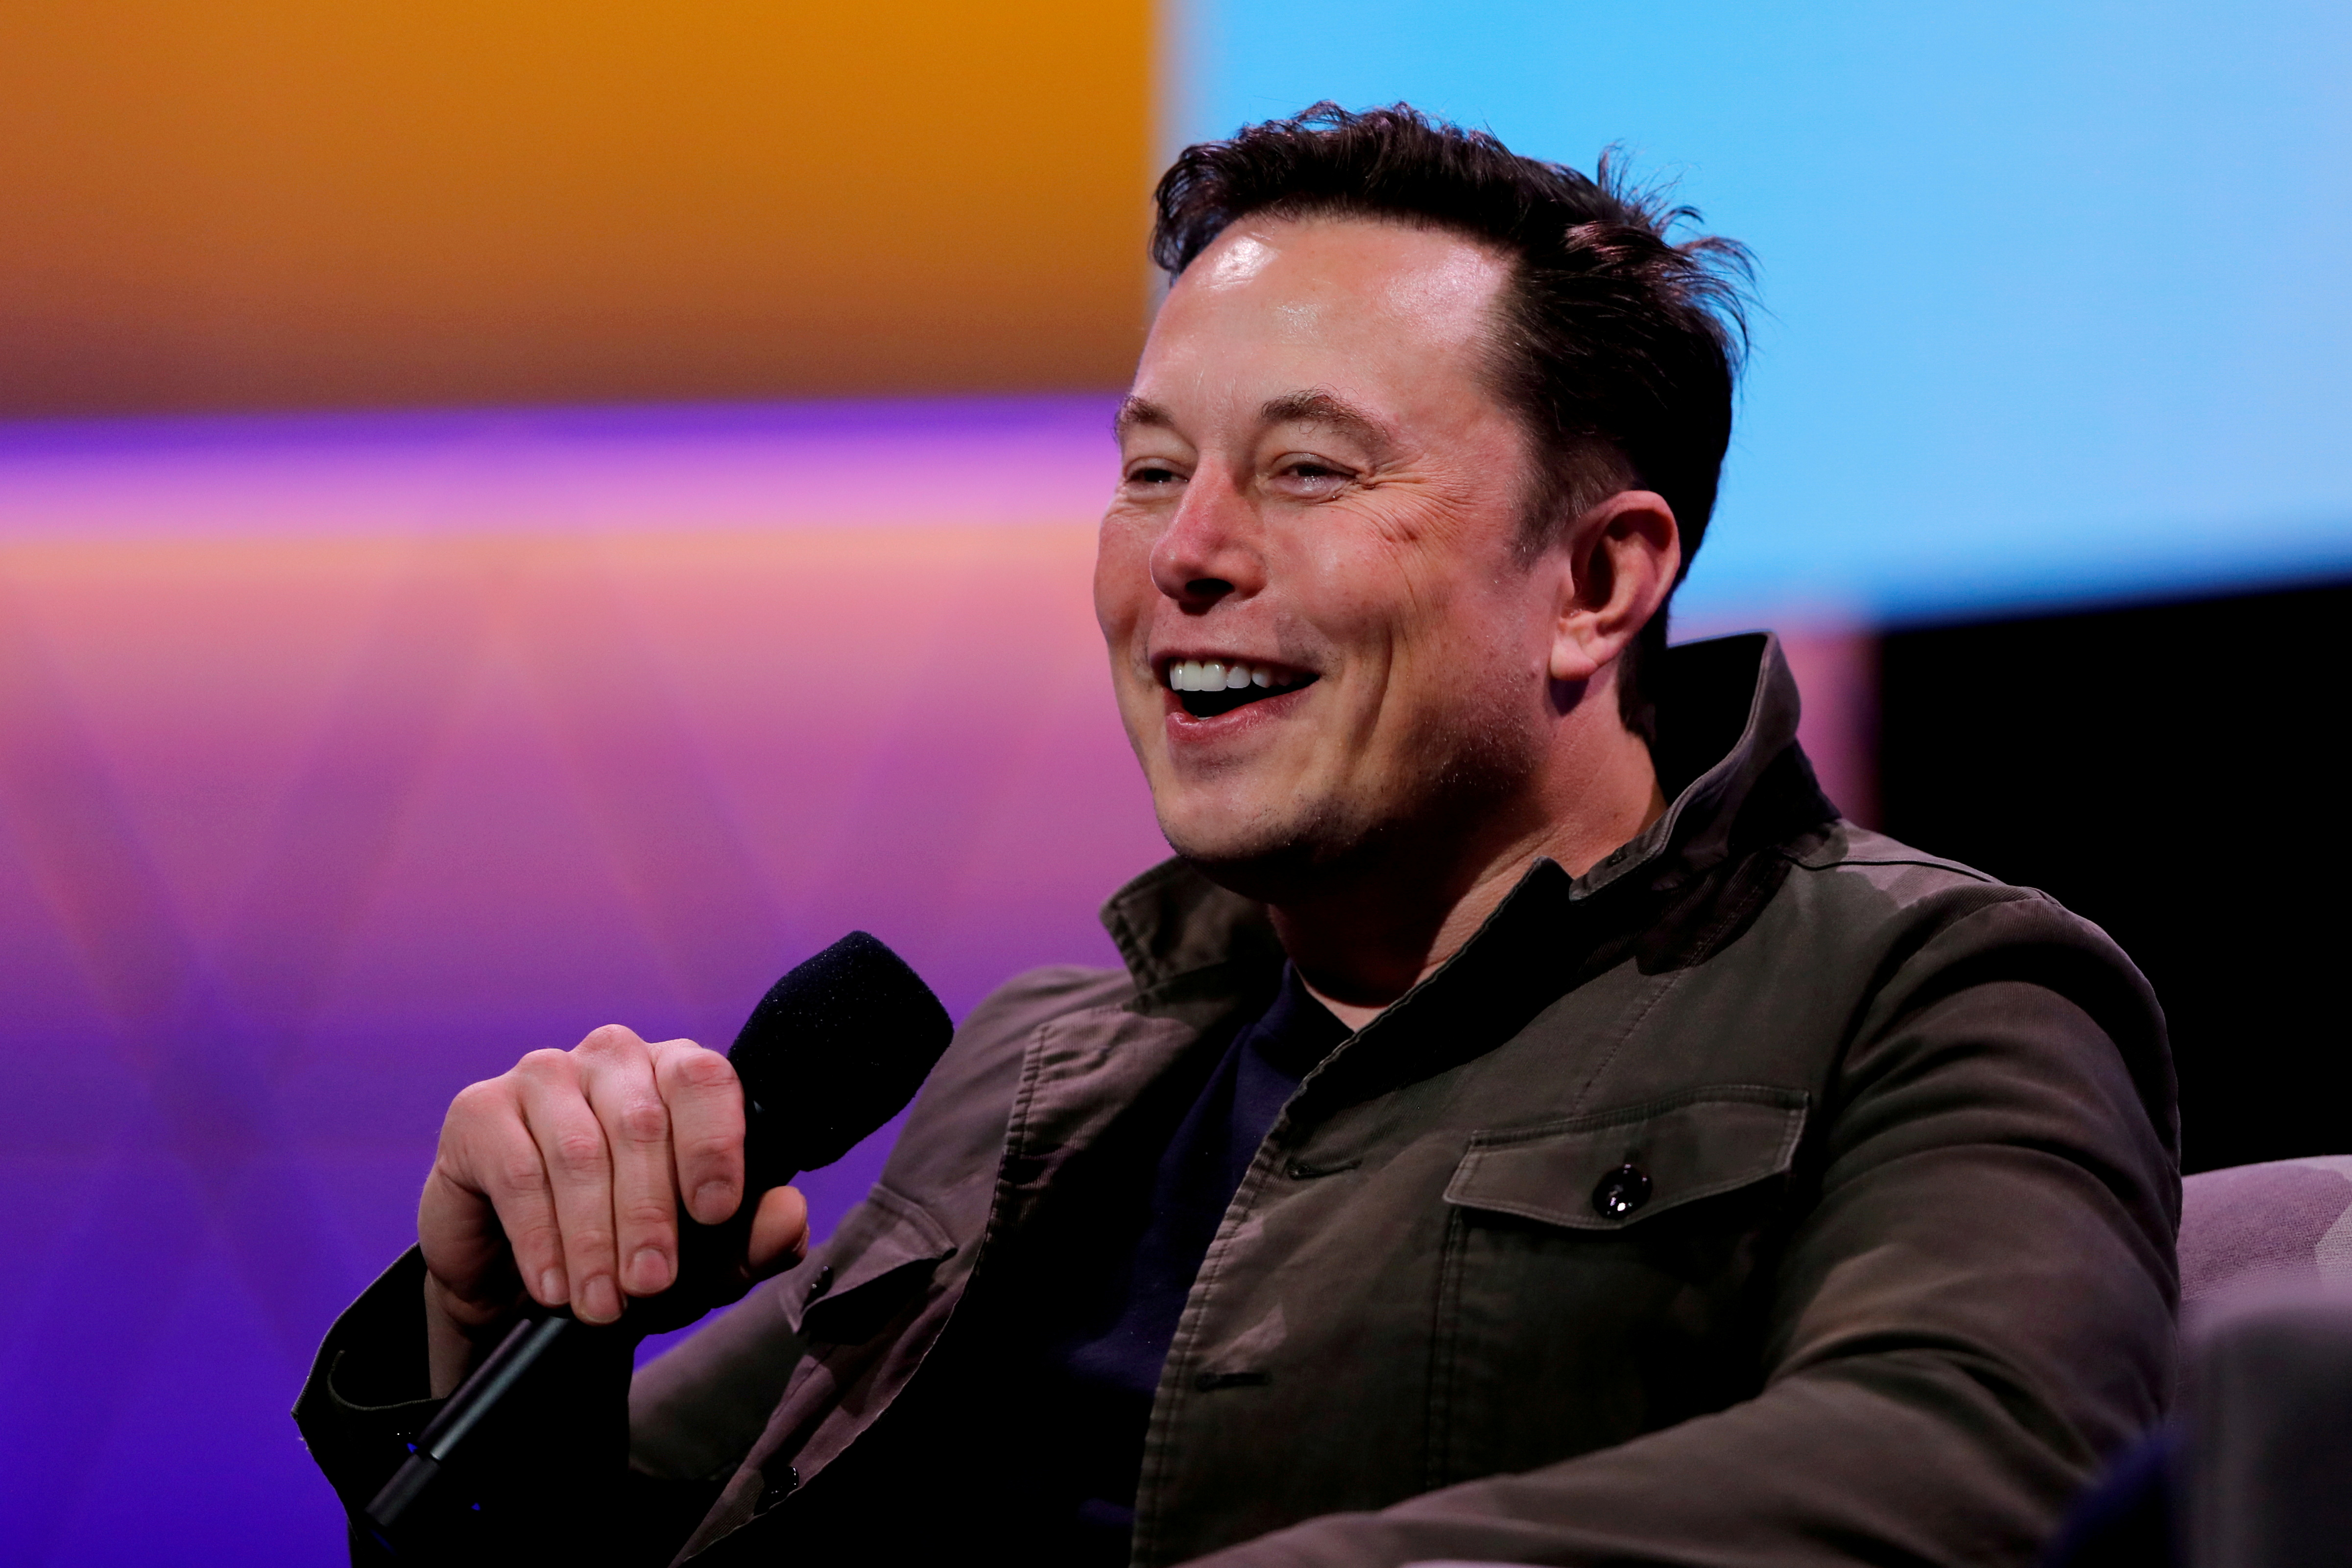 Tesla CEO Elon Musk speaks during the E3 gaming convention in Los Angeles, California, U.S., June 13, 2019.  REUTERS/Mike Blake/File Photo/File Photo